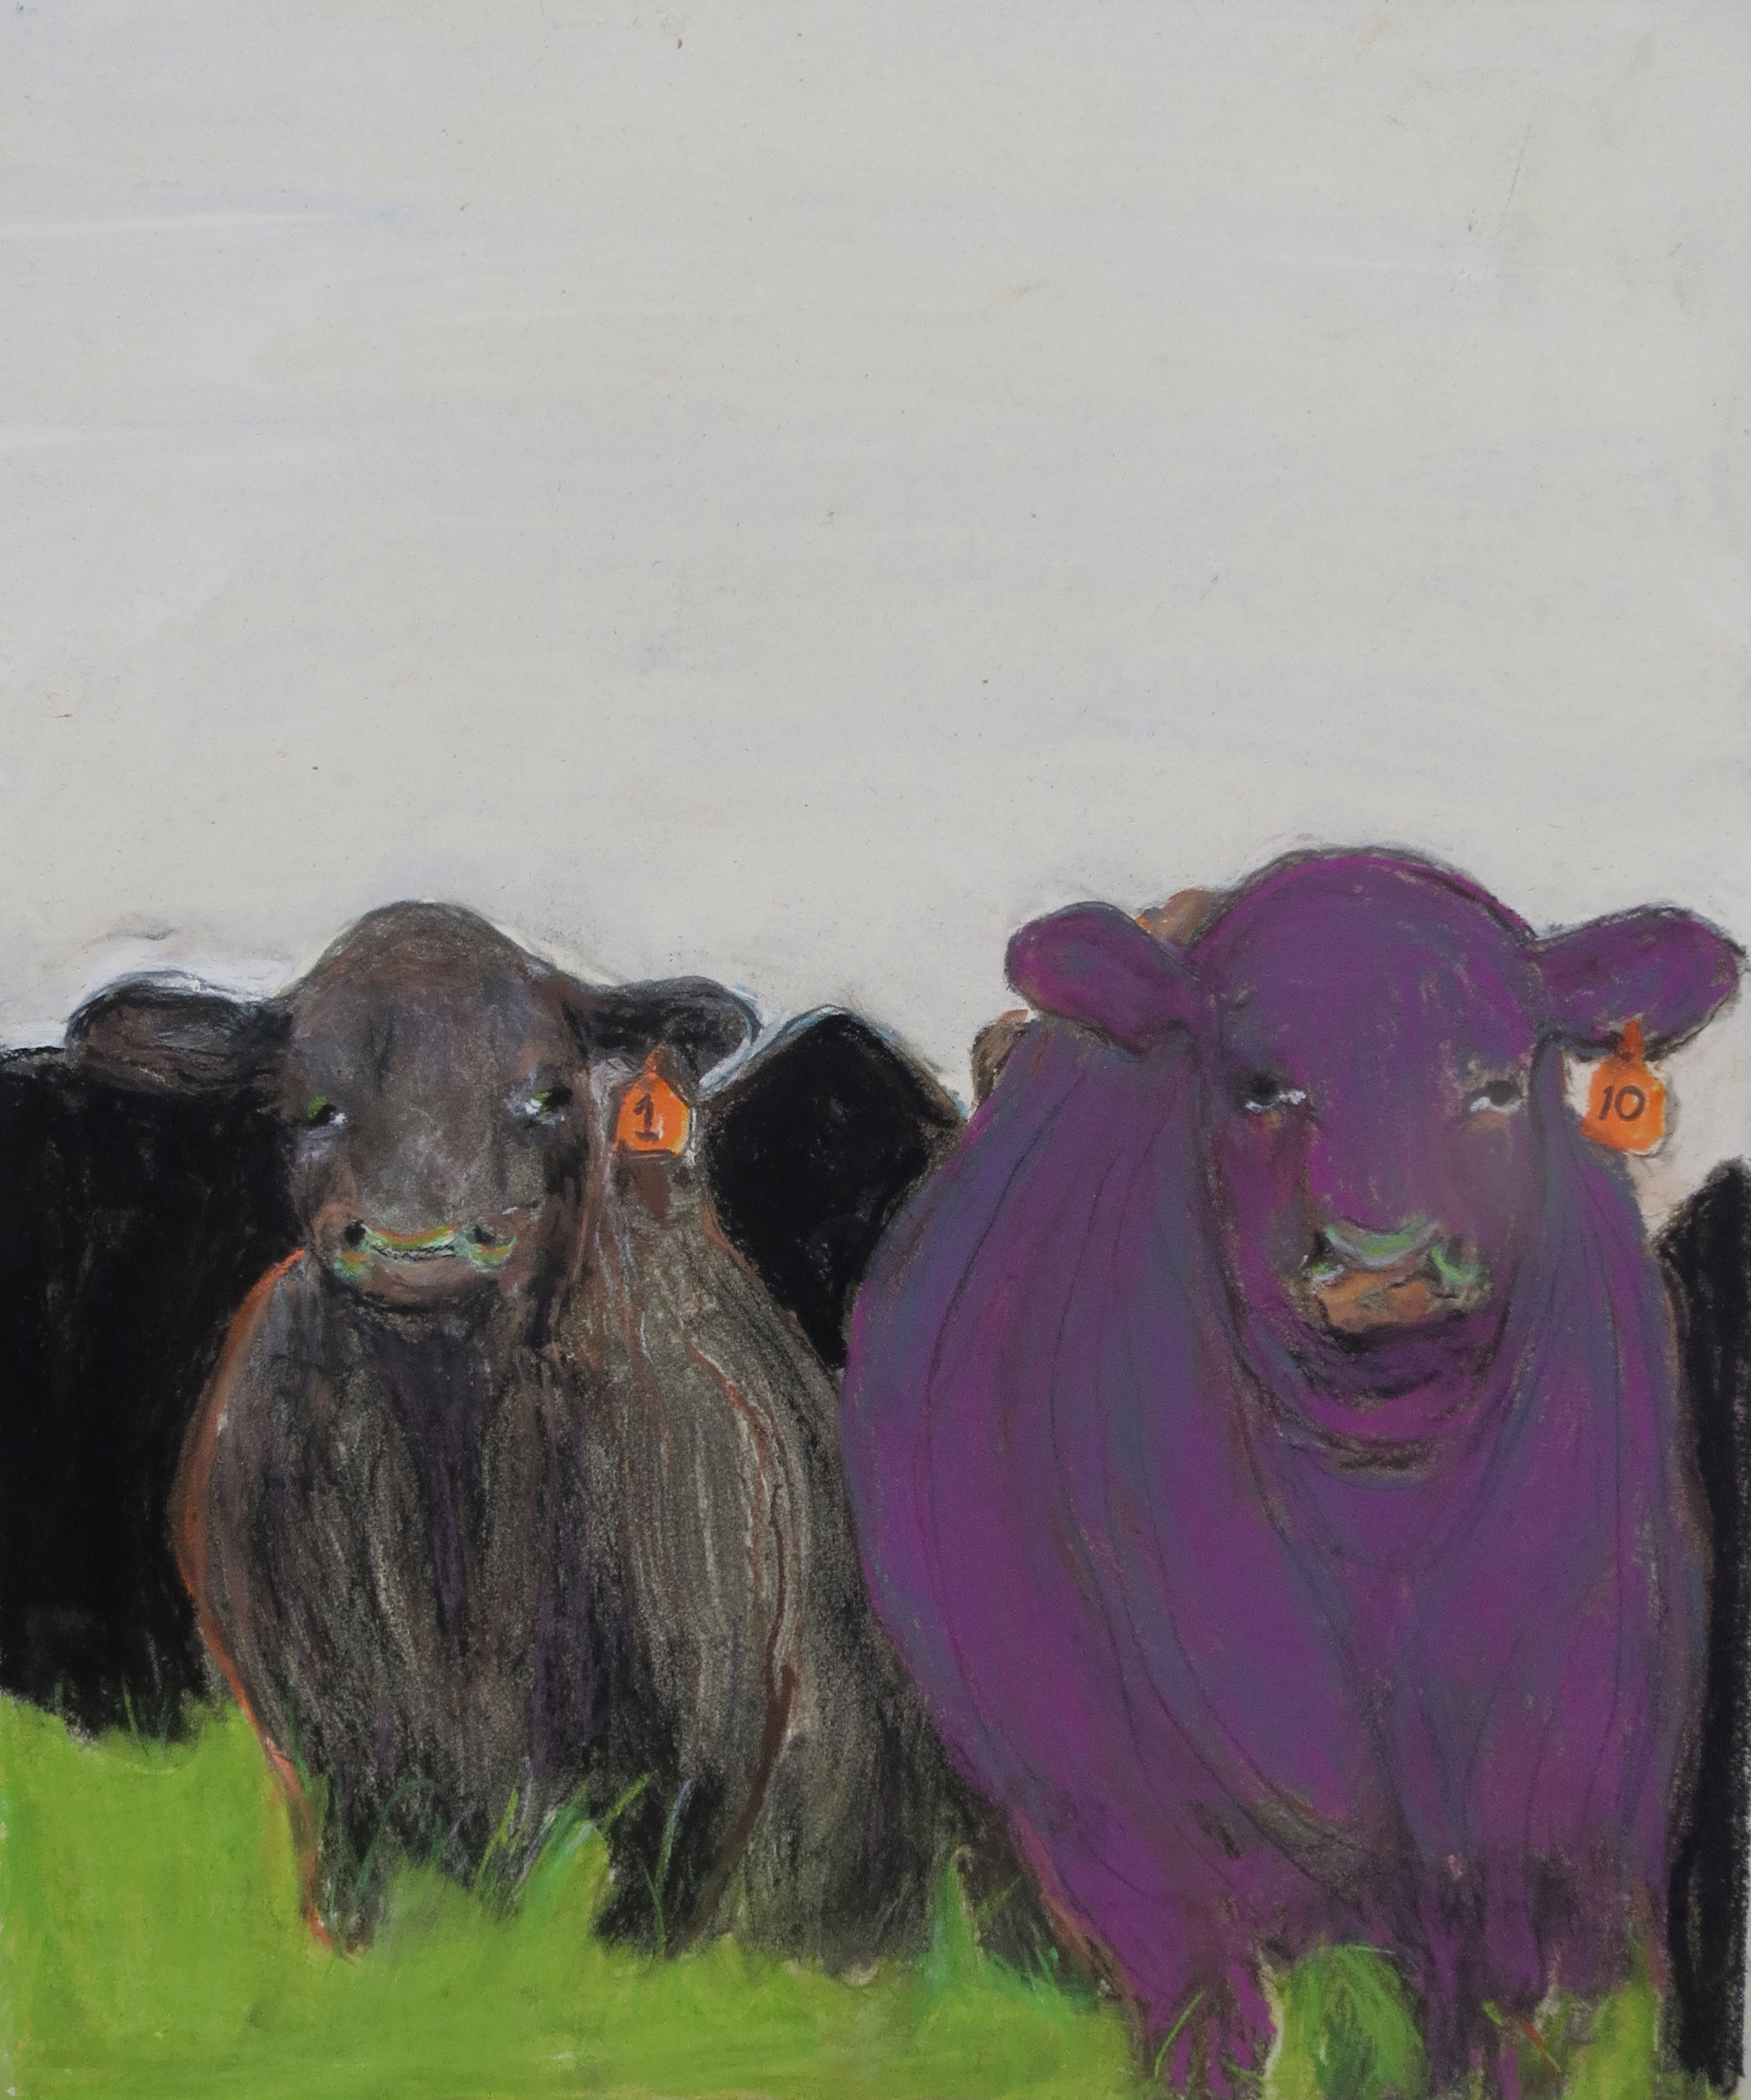 Black Cow-Purple Bull by Susanne Vincent